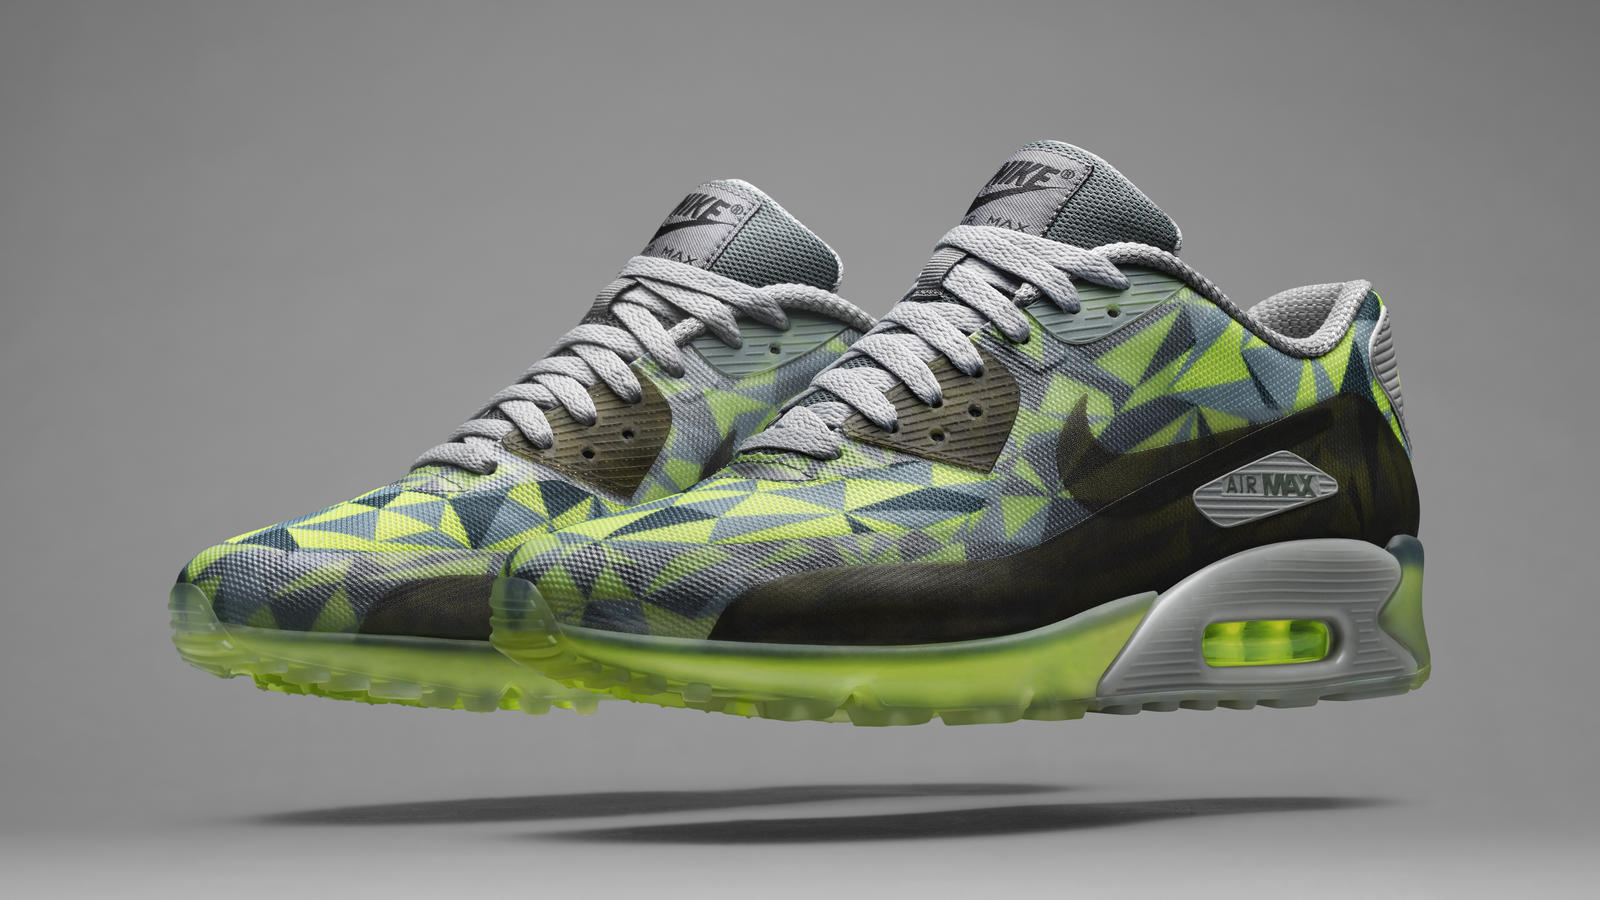 nike 2014 summer air max lunar 90 jacquard products